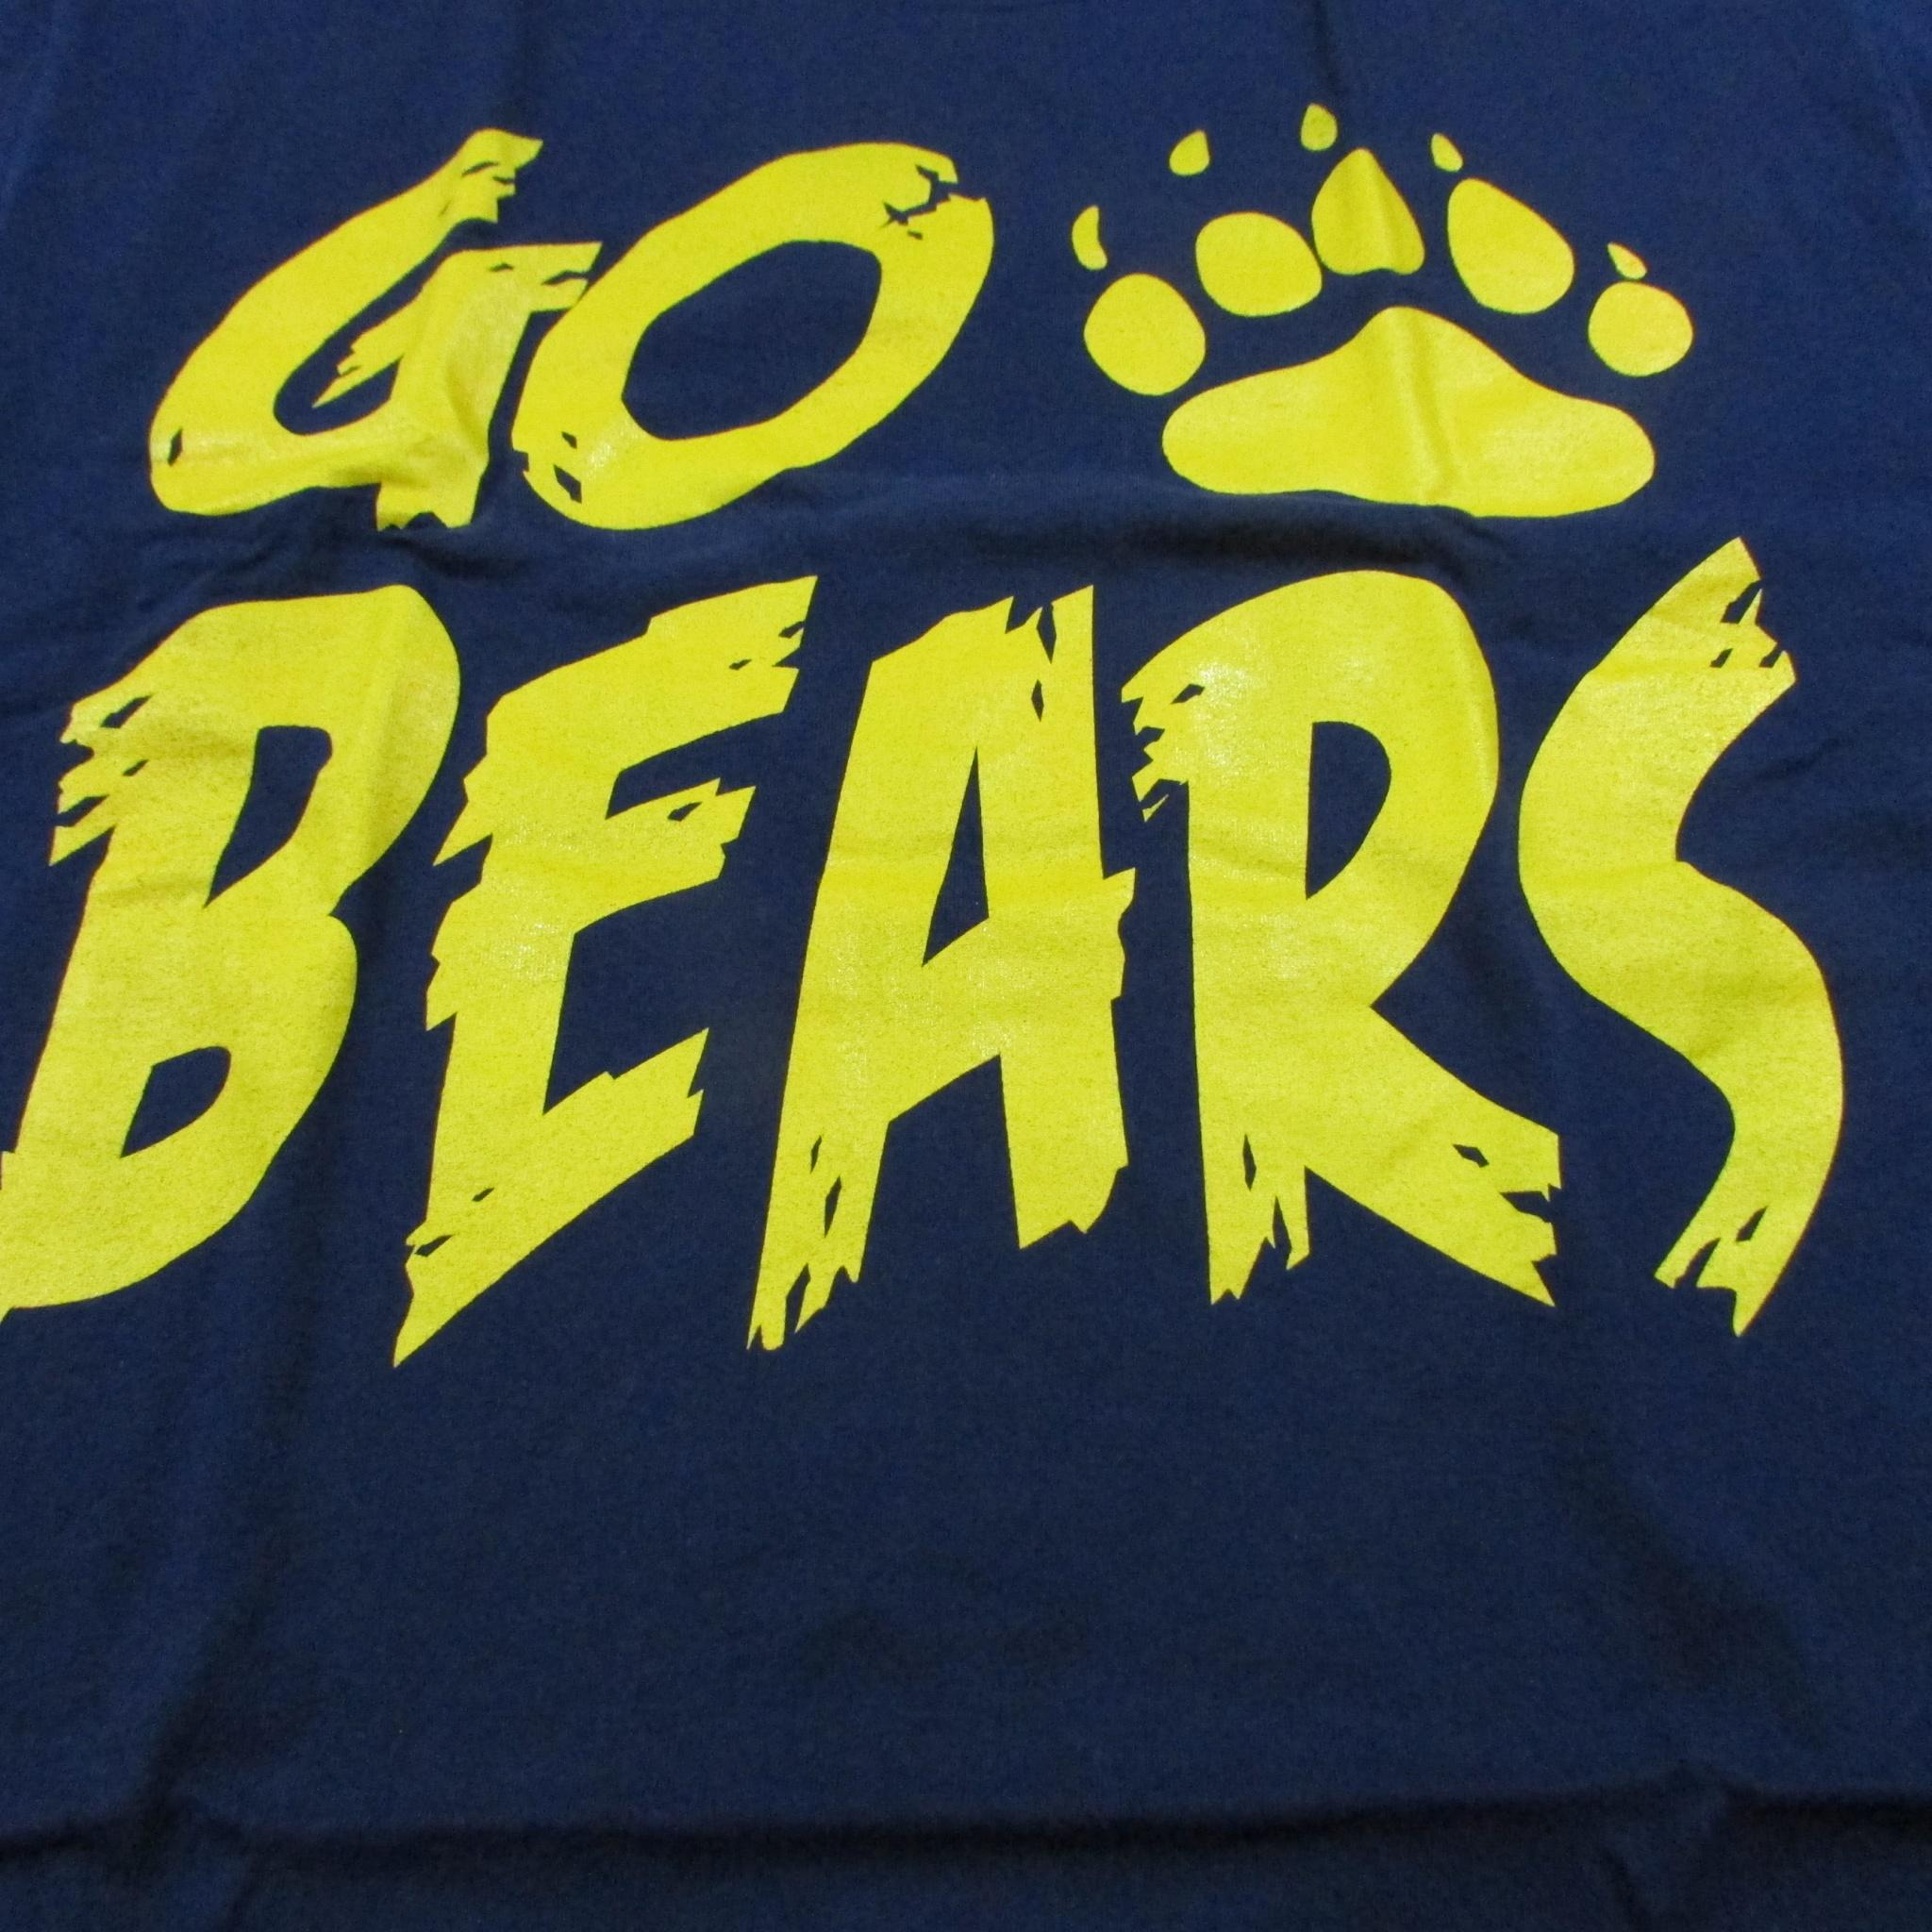 UC Berkeley GO BEARS College Football T-Shirt Sz L